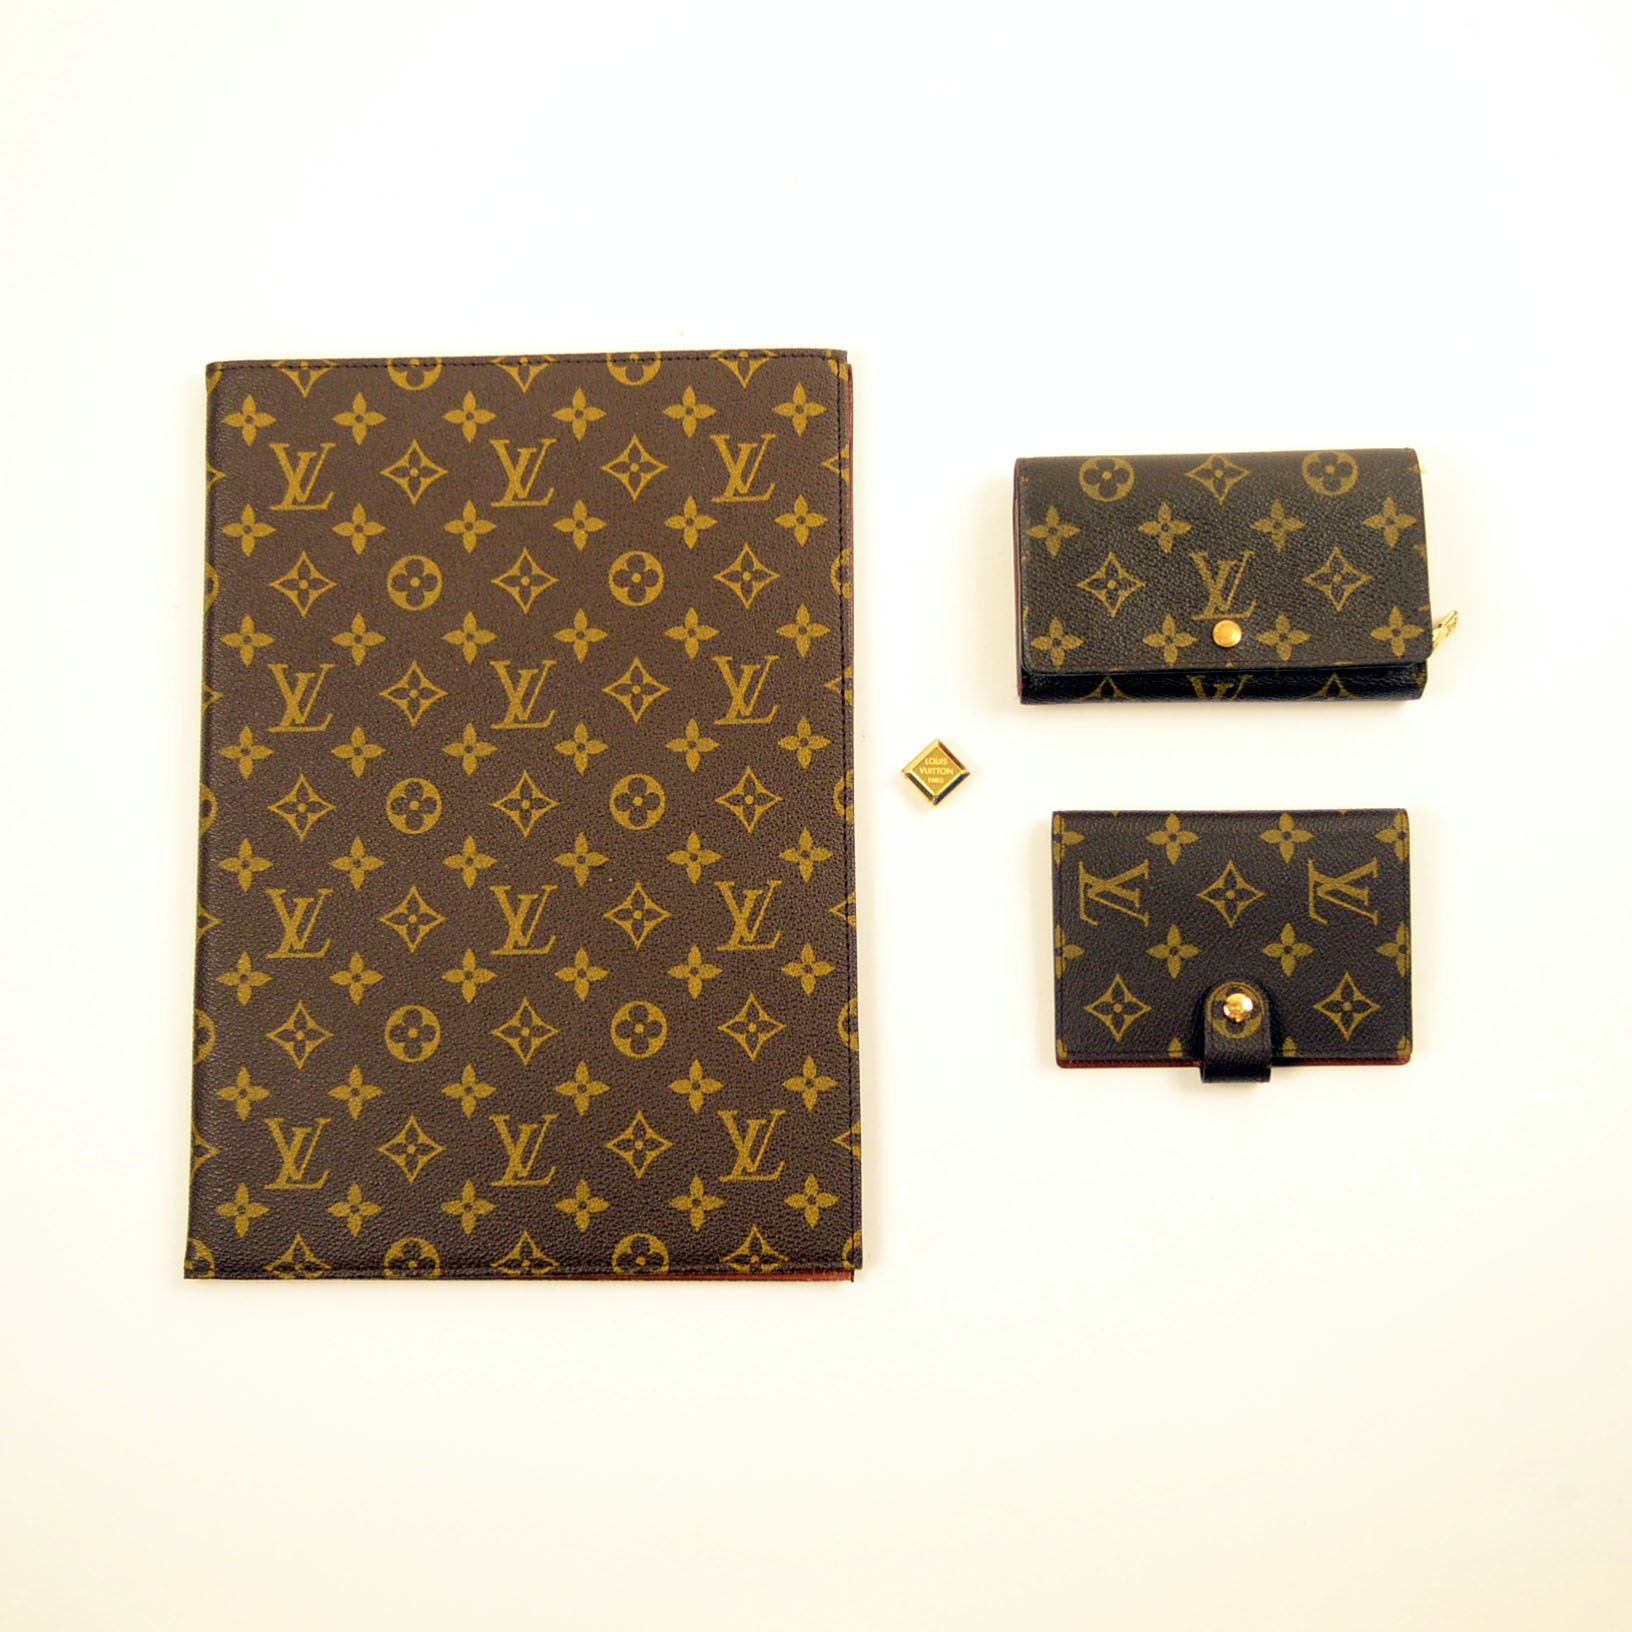 Louis Vuitton Wallets, Cuff Link and Paper Holder